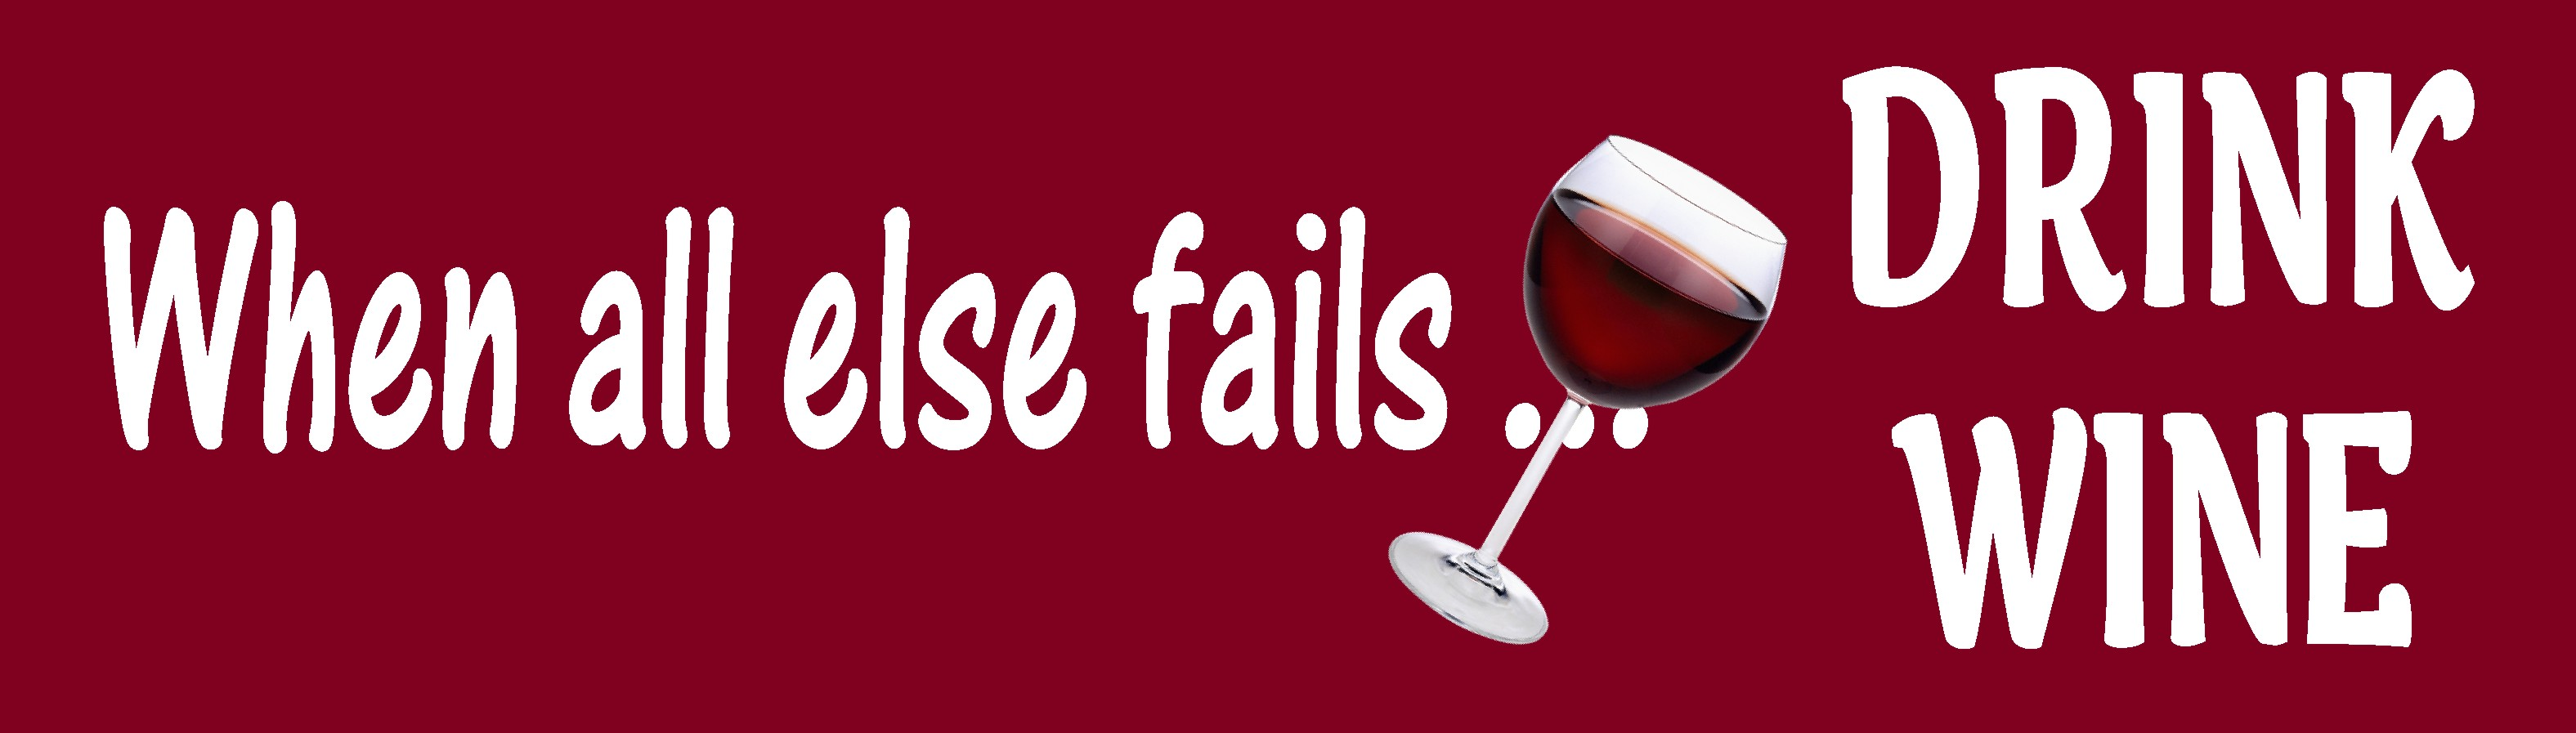 """WHEN ALL ELSE FAILS DRINK WINE 10.5"""" X 3"""" WOODEN BLOCK SIGN"""